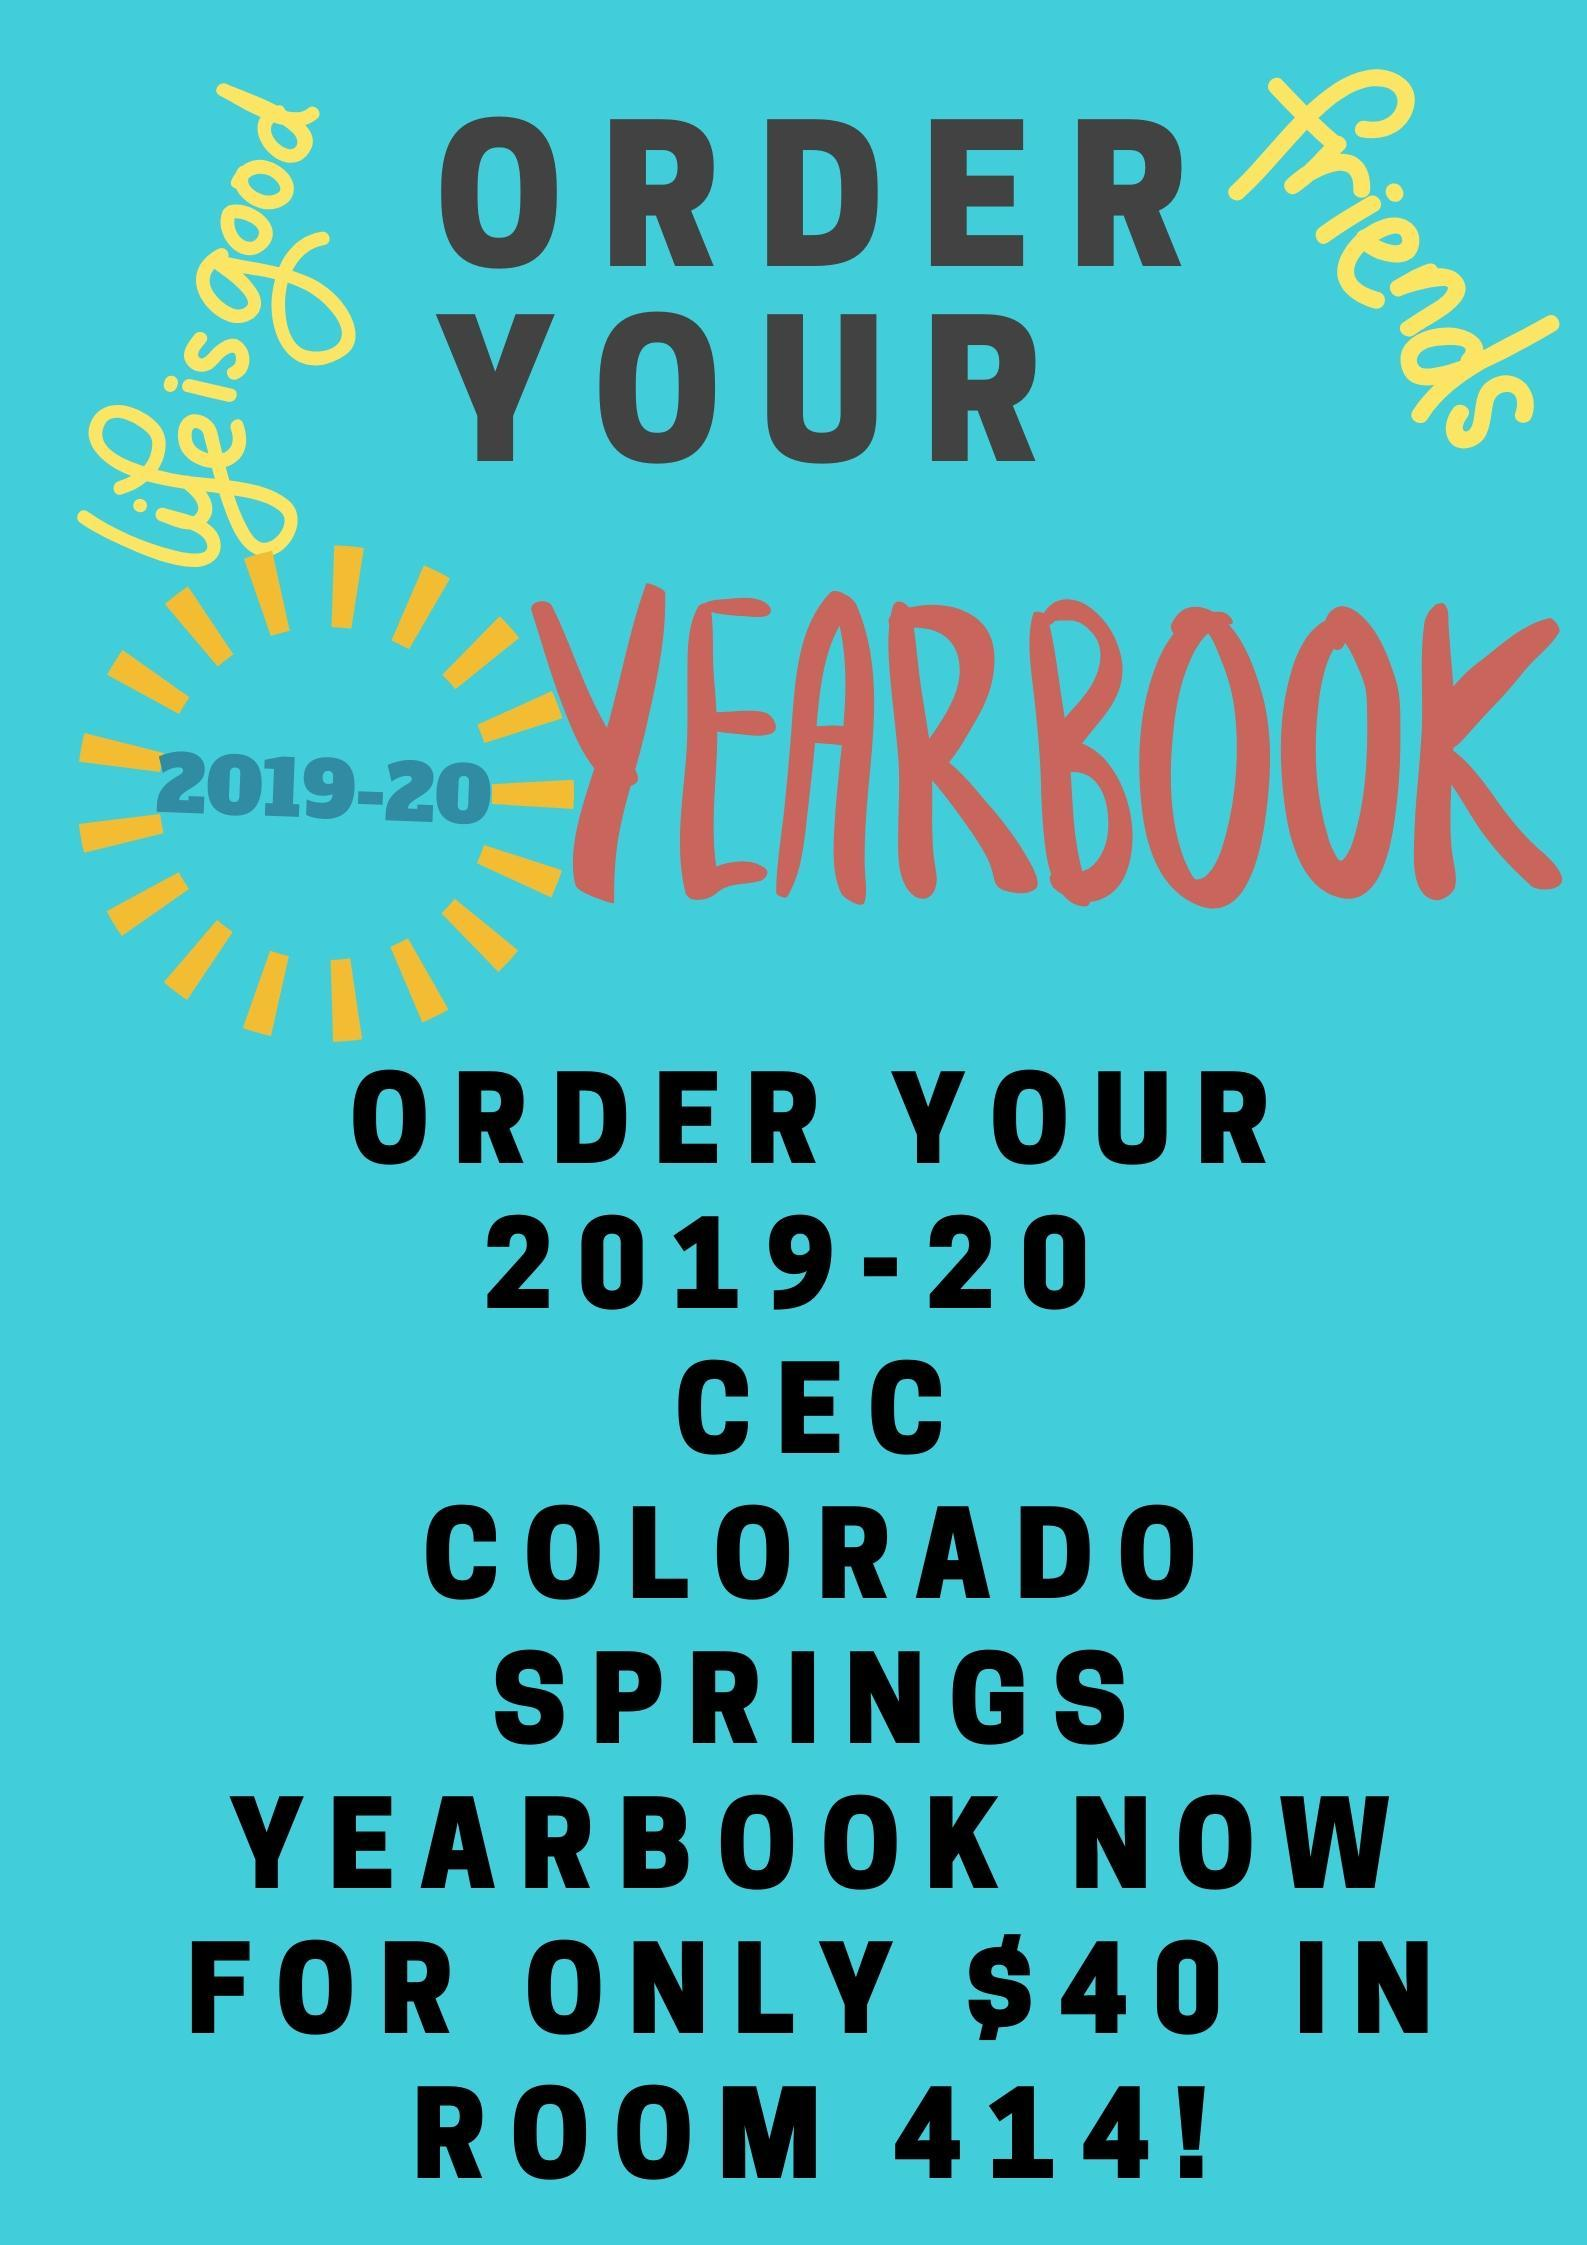 Purchase your yearbook for only $40